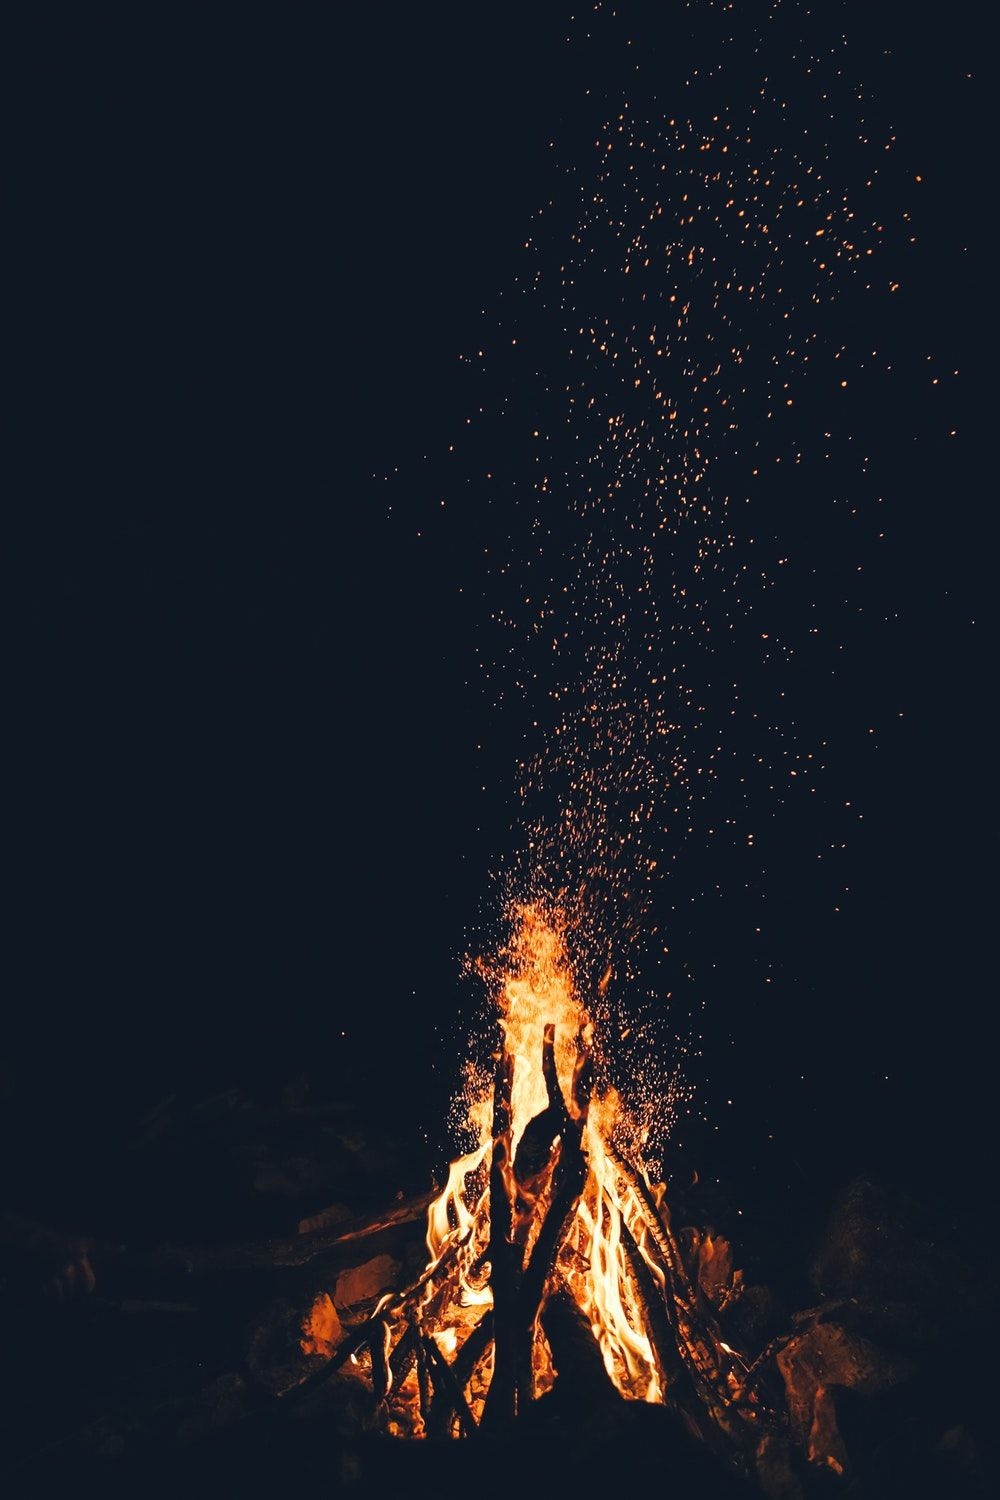 1000x1500 20+ Best Free Fire Pictures on Unsplash